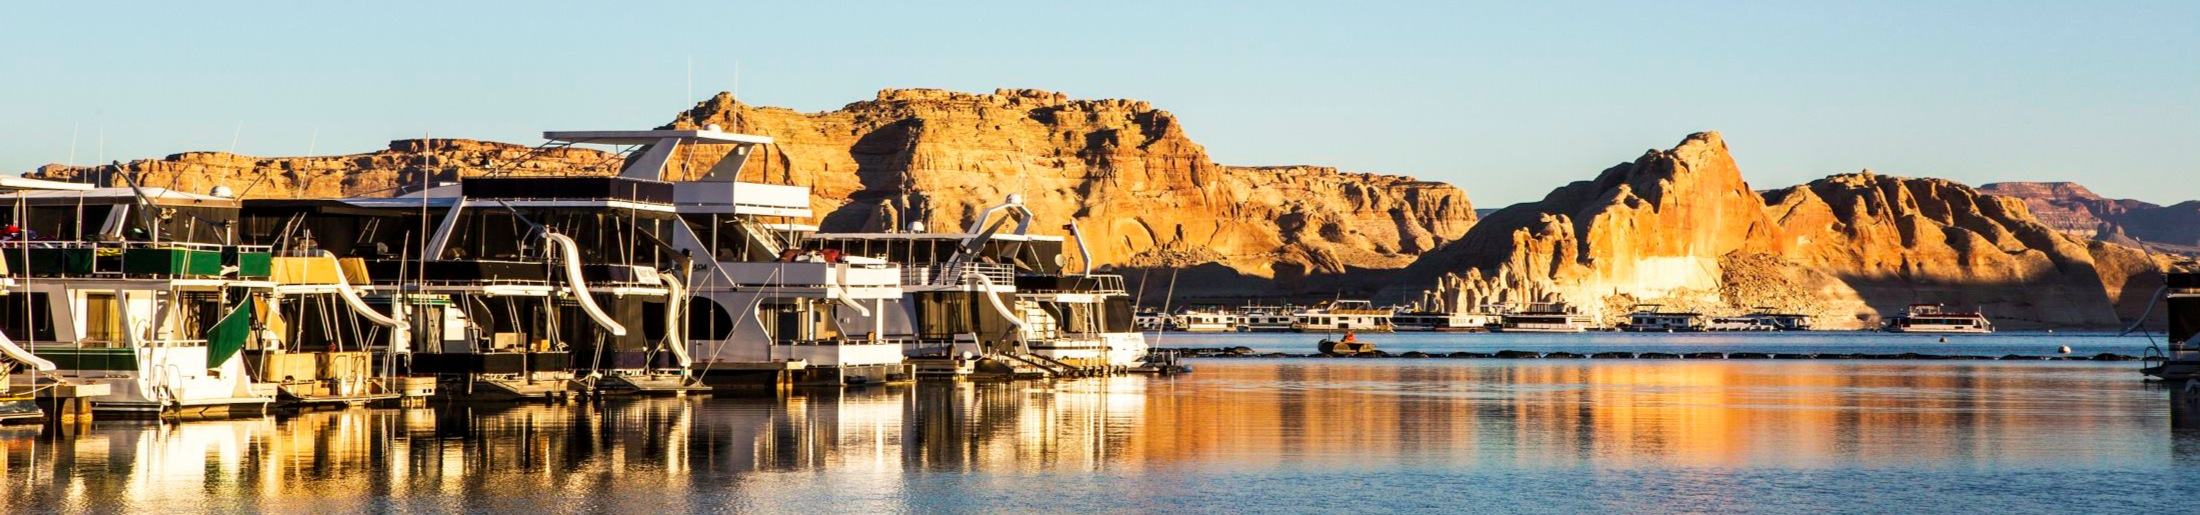 Wahweap Marina on Lake Powell in Arizona